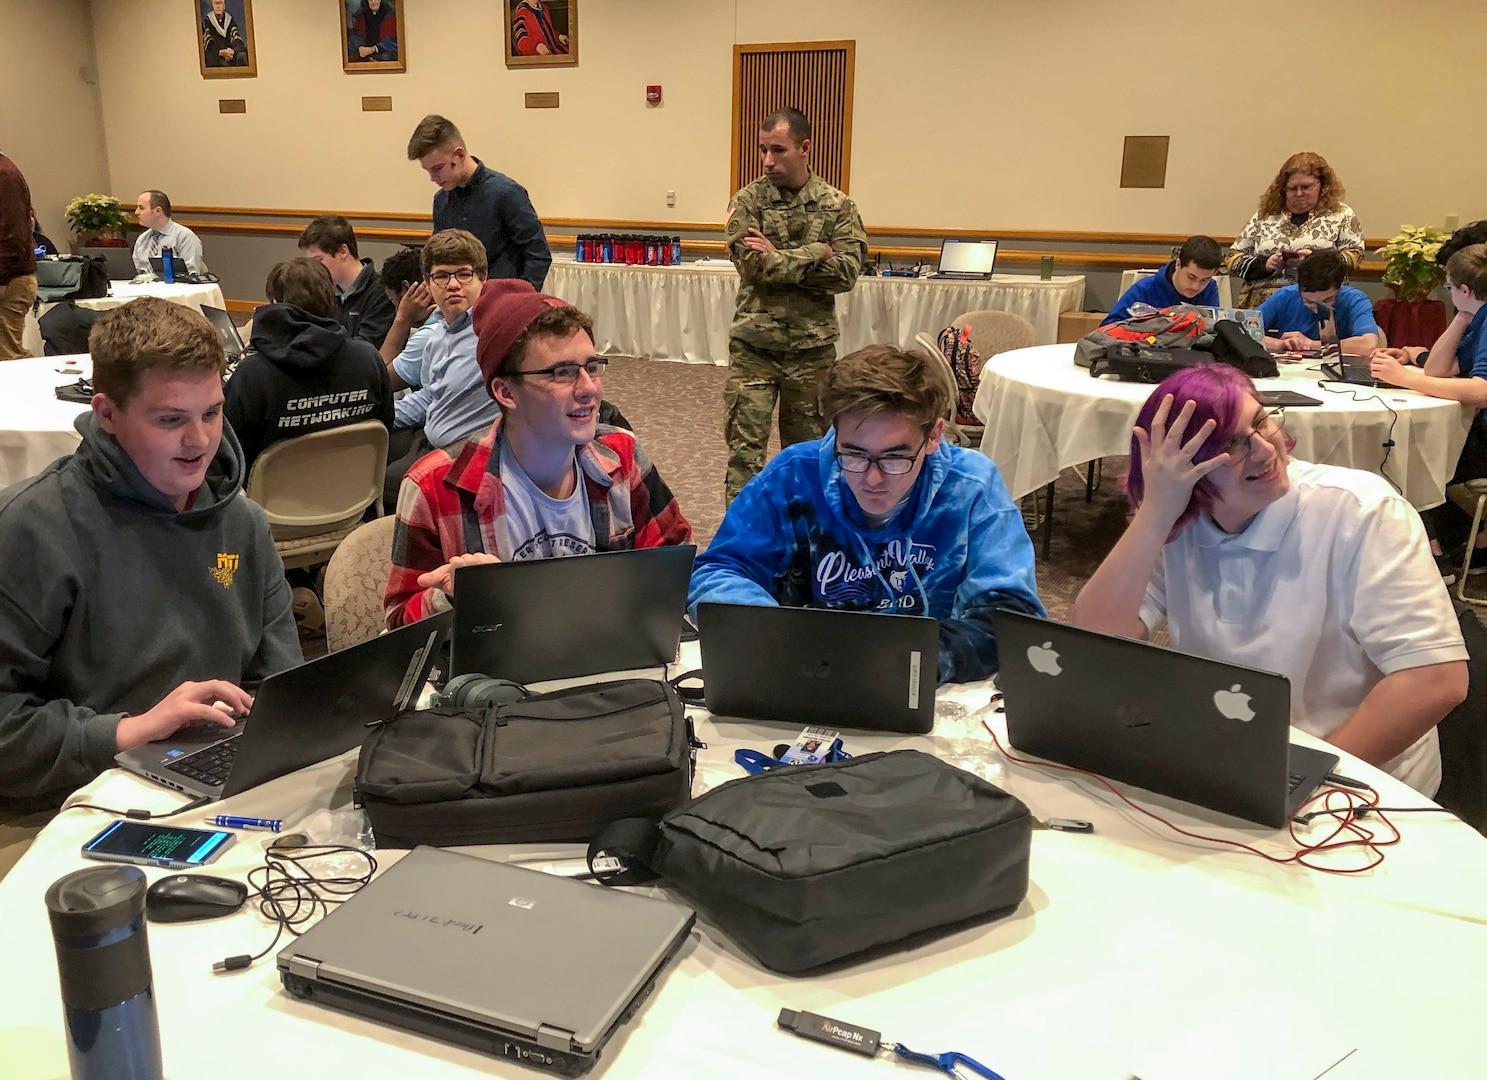 Soldiers with the Pennsylvania National Guard Cyber Branch and Recruiting and Retention Battalion engaged a group of 18 high school students in the new Wi-Fighter cyber challenge Dec. 12 at DeSales University in Center Valley, Pa. The winning team from Monroe Career and Technical Institute from right to left is: Chase Blecker, Rocco Susinskas, Jordan McGrath, and Liam Travers.